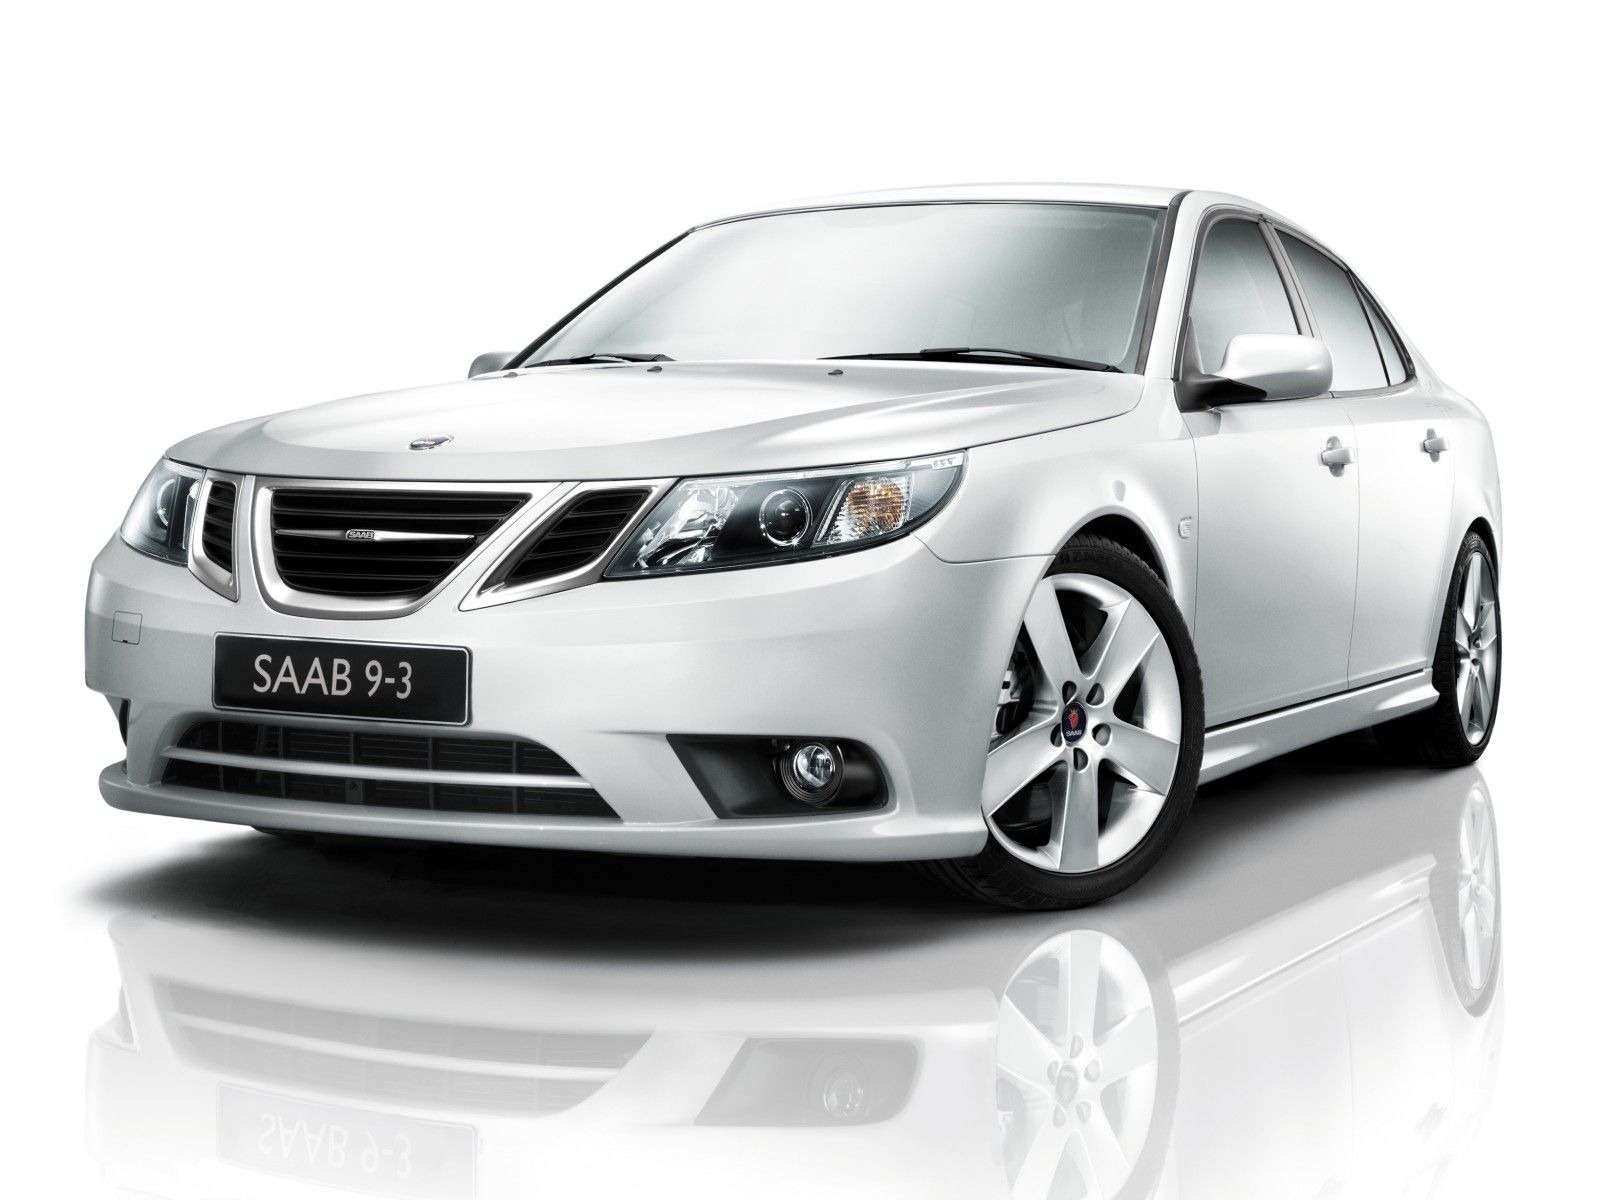 Saab 9 3 Turbo Front For Your S Follow This Link